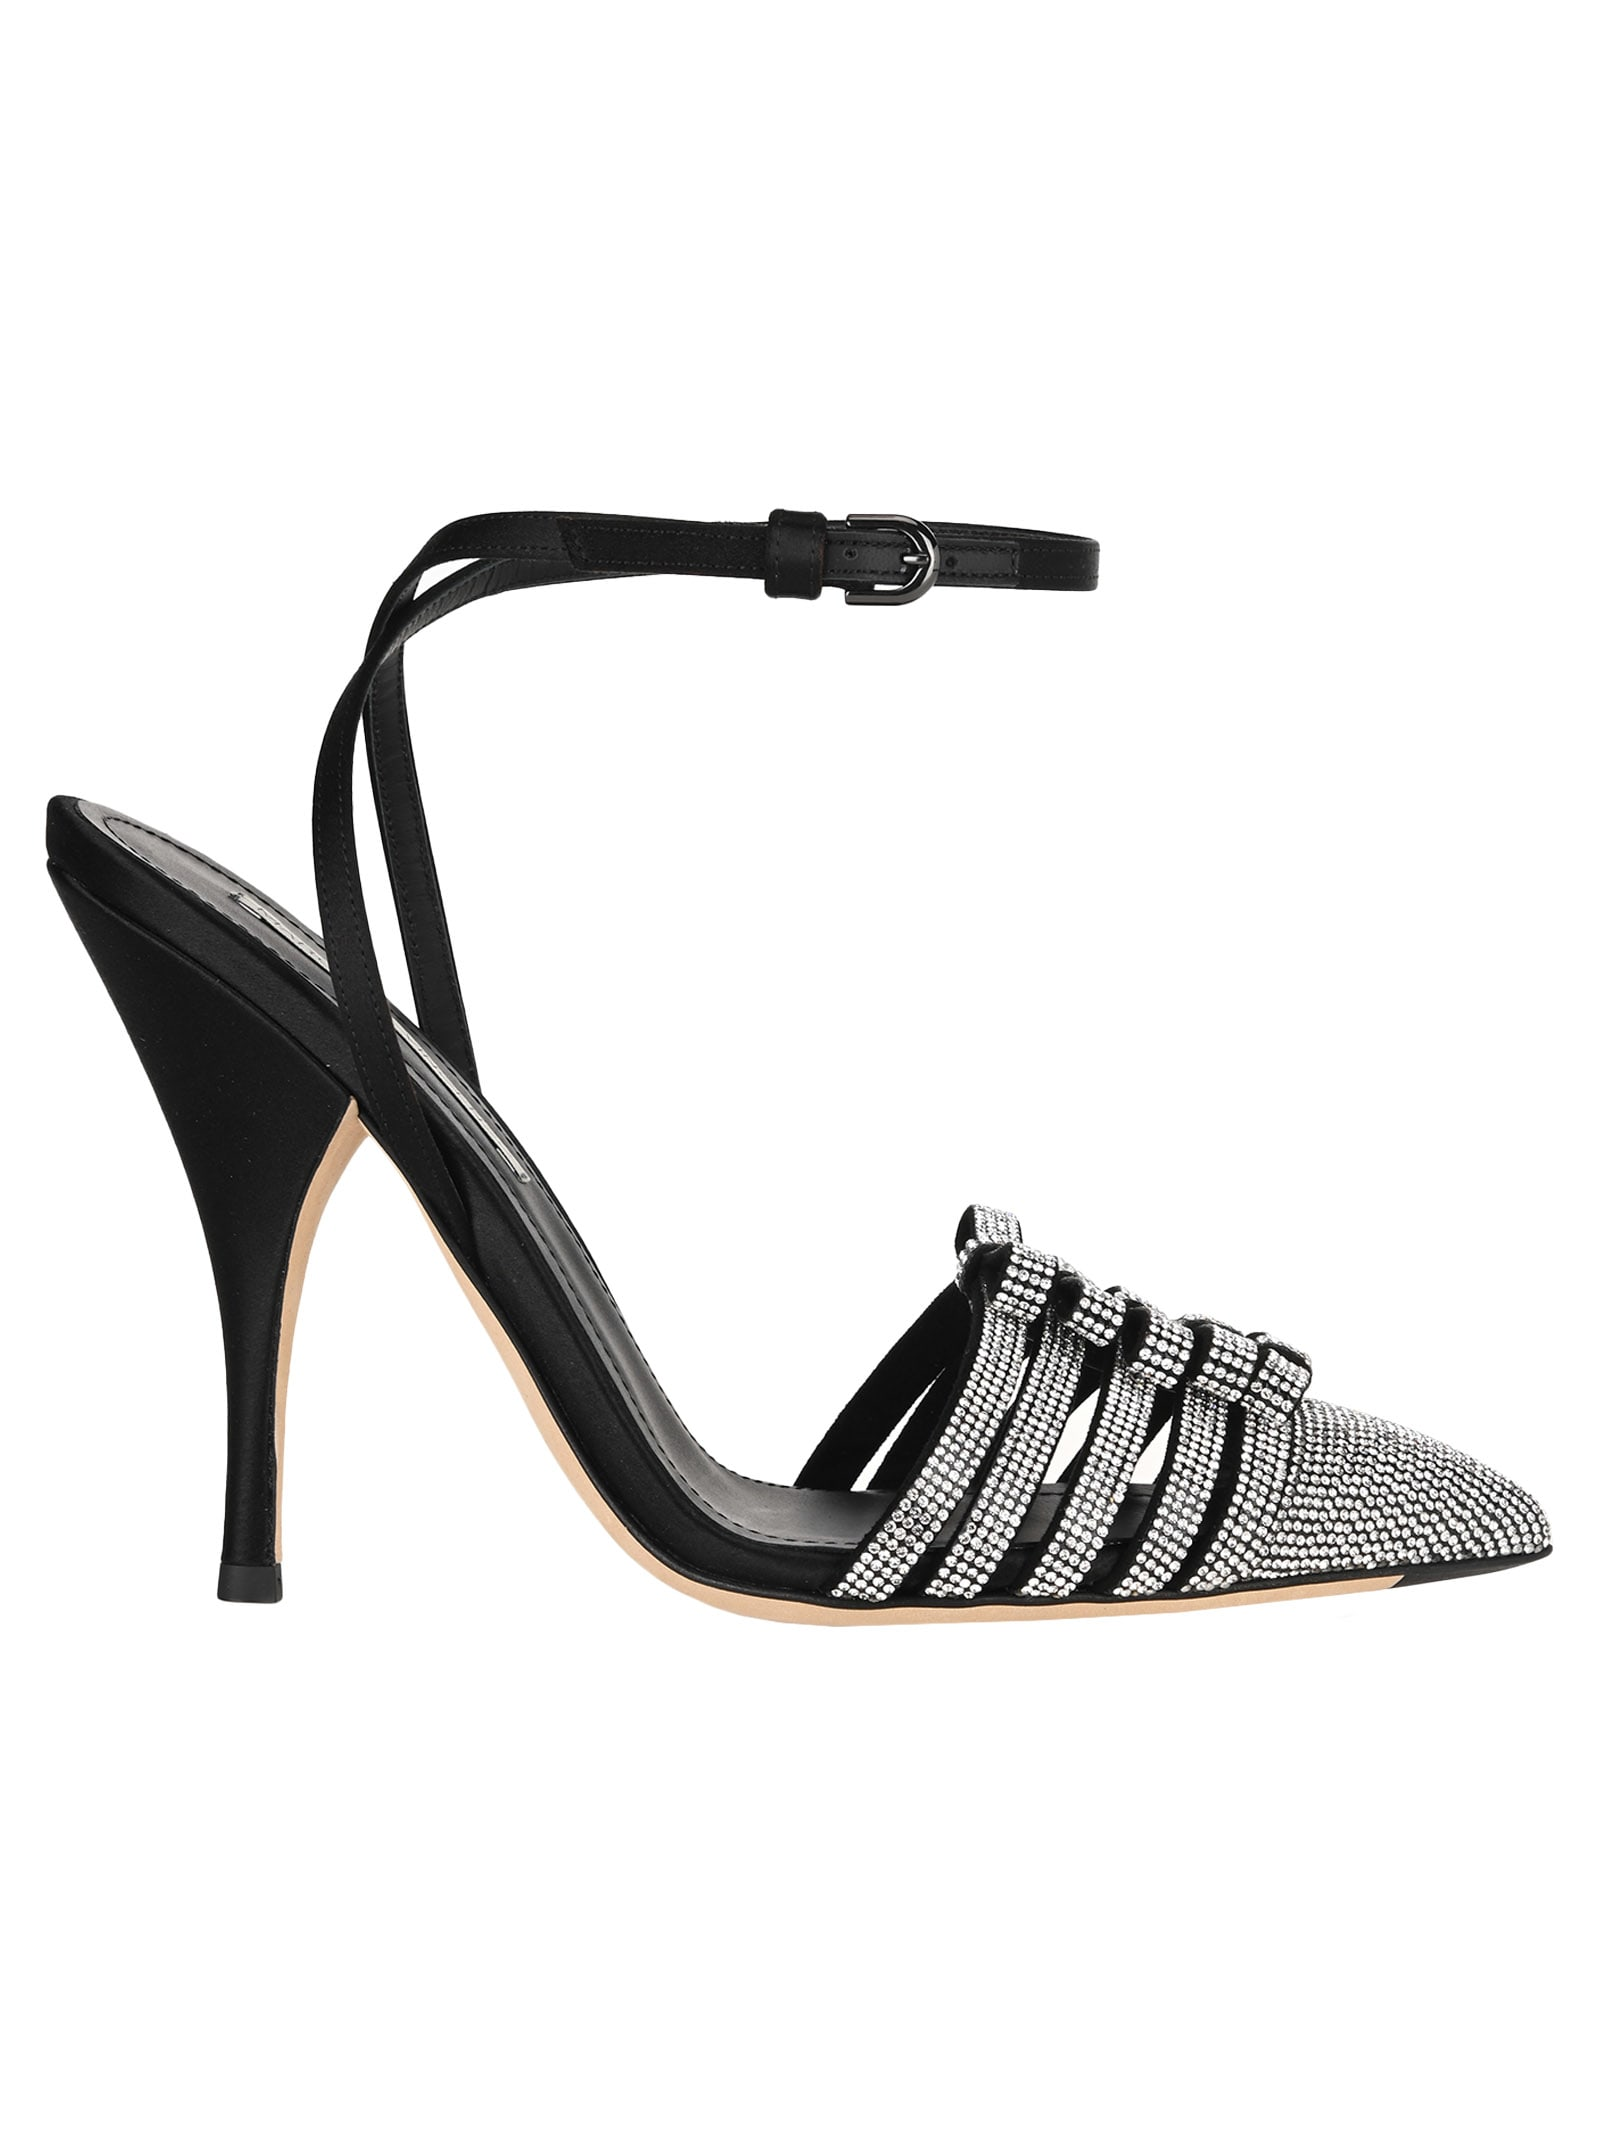 Marco De Vincenzo CRYSTAL-EMBELLISHED SANDALS